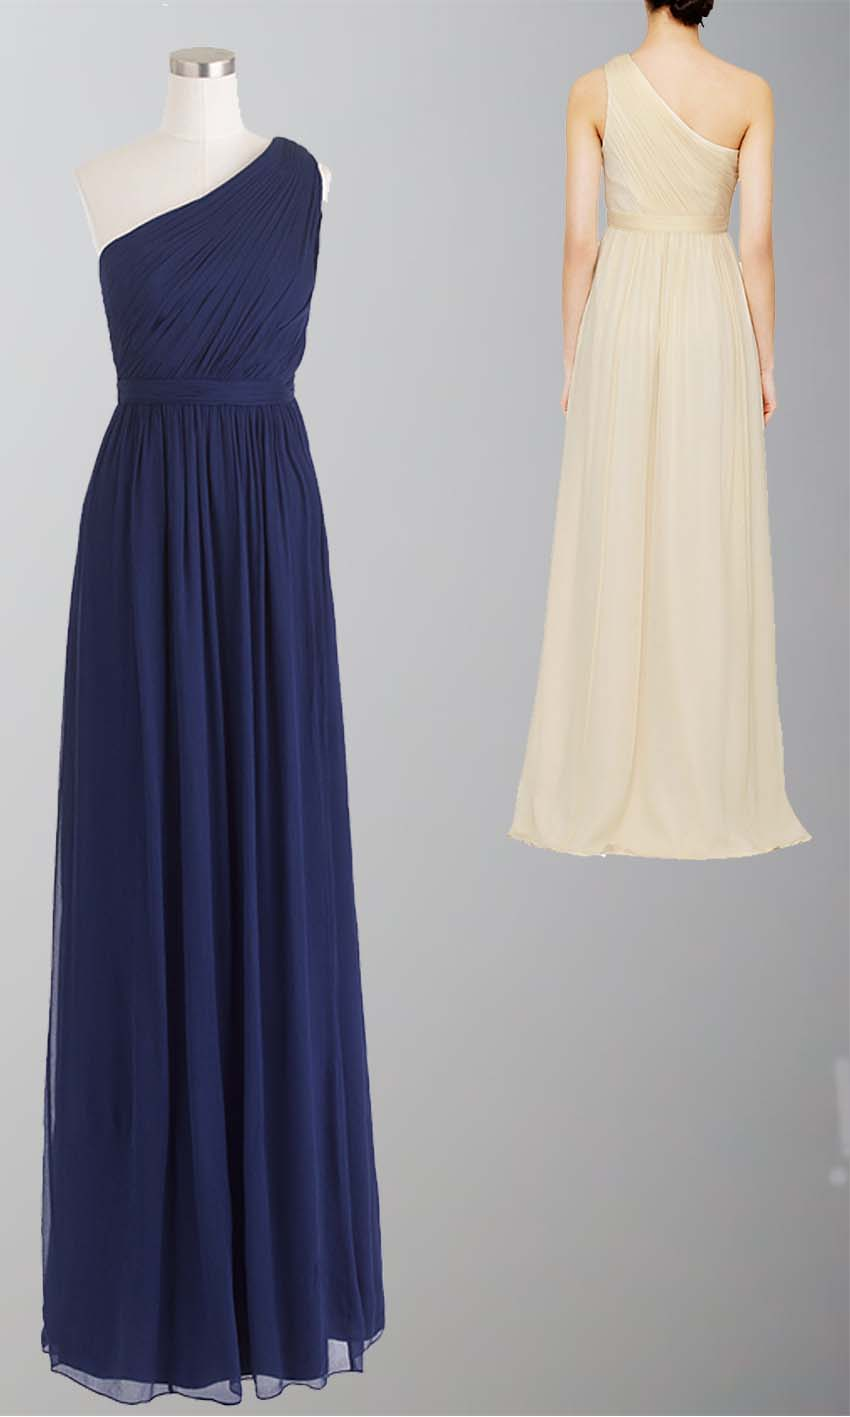 Navy Blue One Shoulder Bridesmaid Dress UK KSP335 [KSP335] - £92.00 : Cheap Prom Dresses Uk, Bridesmaid Dresses, 2014 Prom & Evening Dresses, Look for cheap elegant prom dresses 2014, cocktail gowns, or dresses for special occasions? kissprom.co.uk offers various bridesmaid dresses, evening dress, free shipping to UK etc.